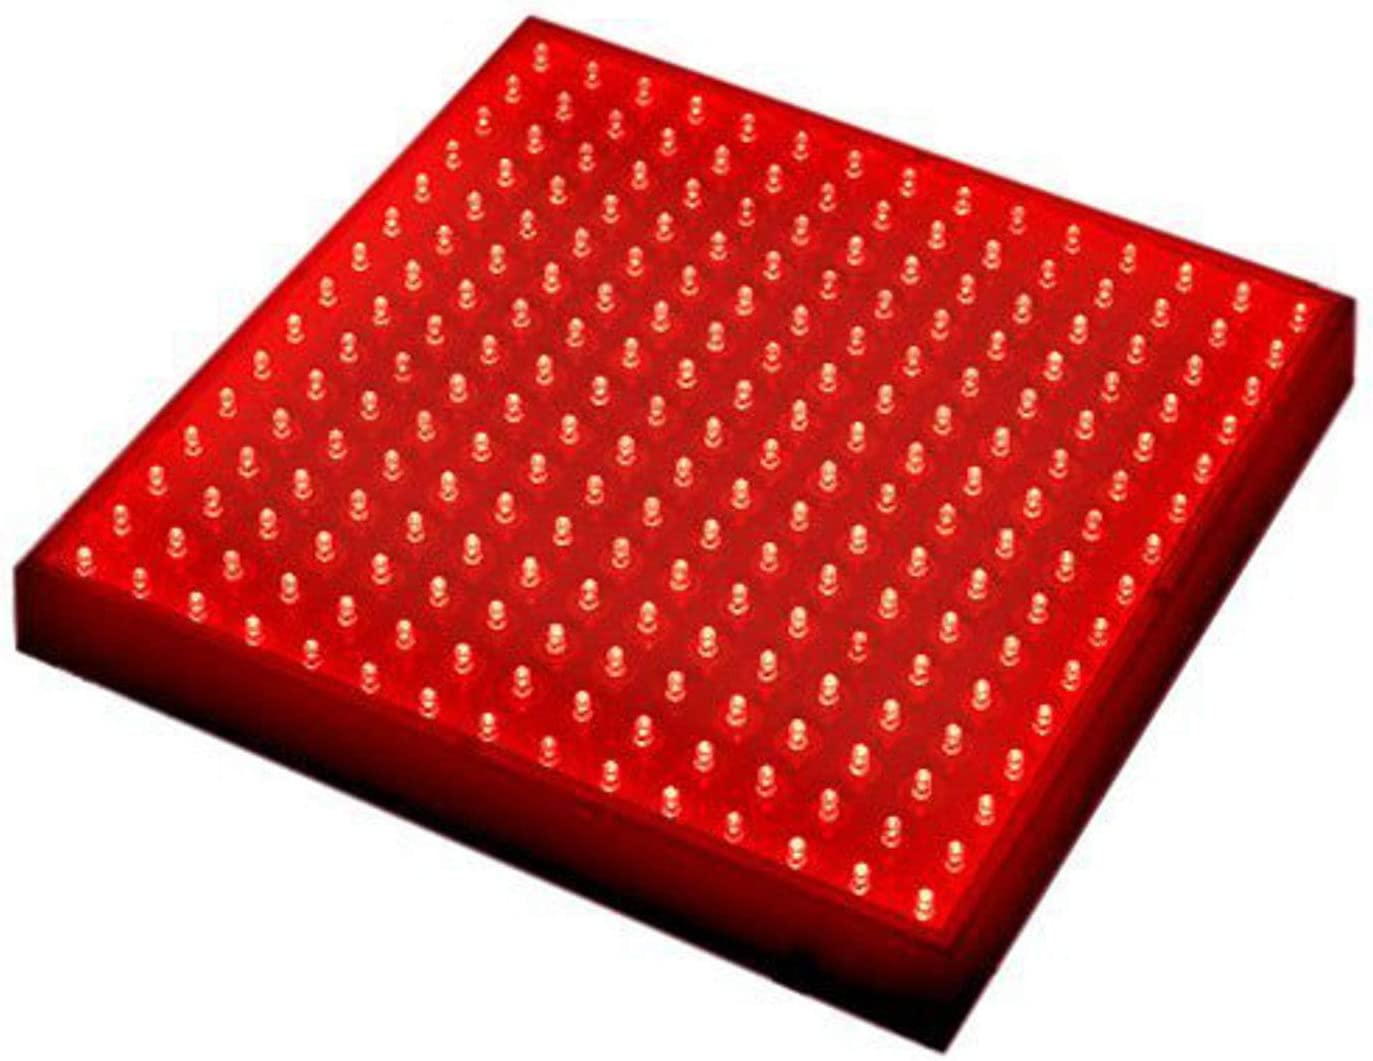 HQRP 225 Red LED Indoor Garden Hydroponic Plant Grow Light Panel 14W Hanging Kit